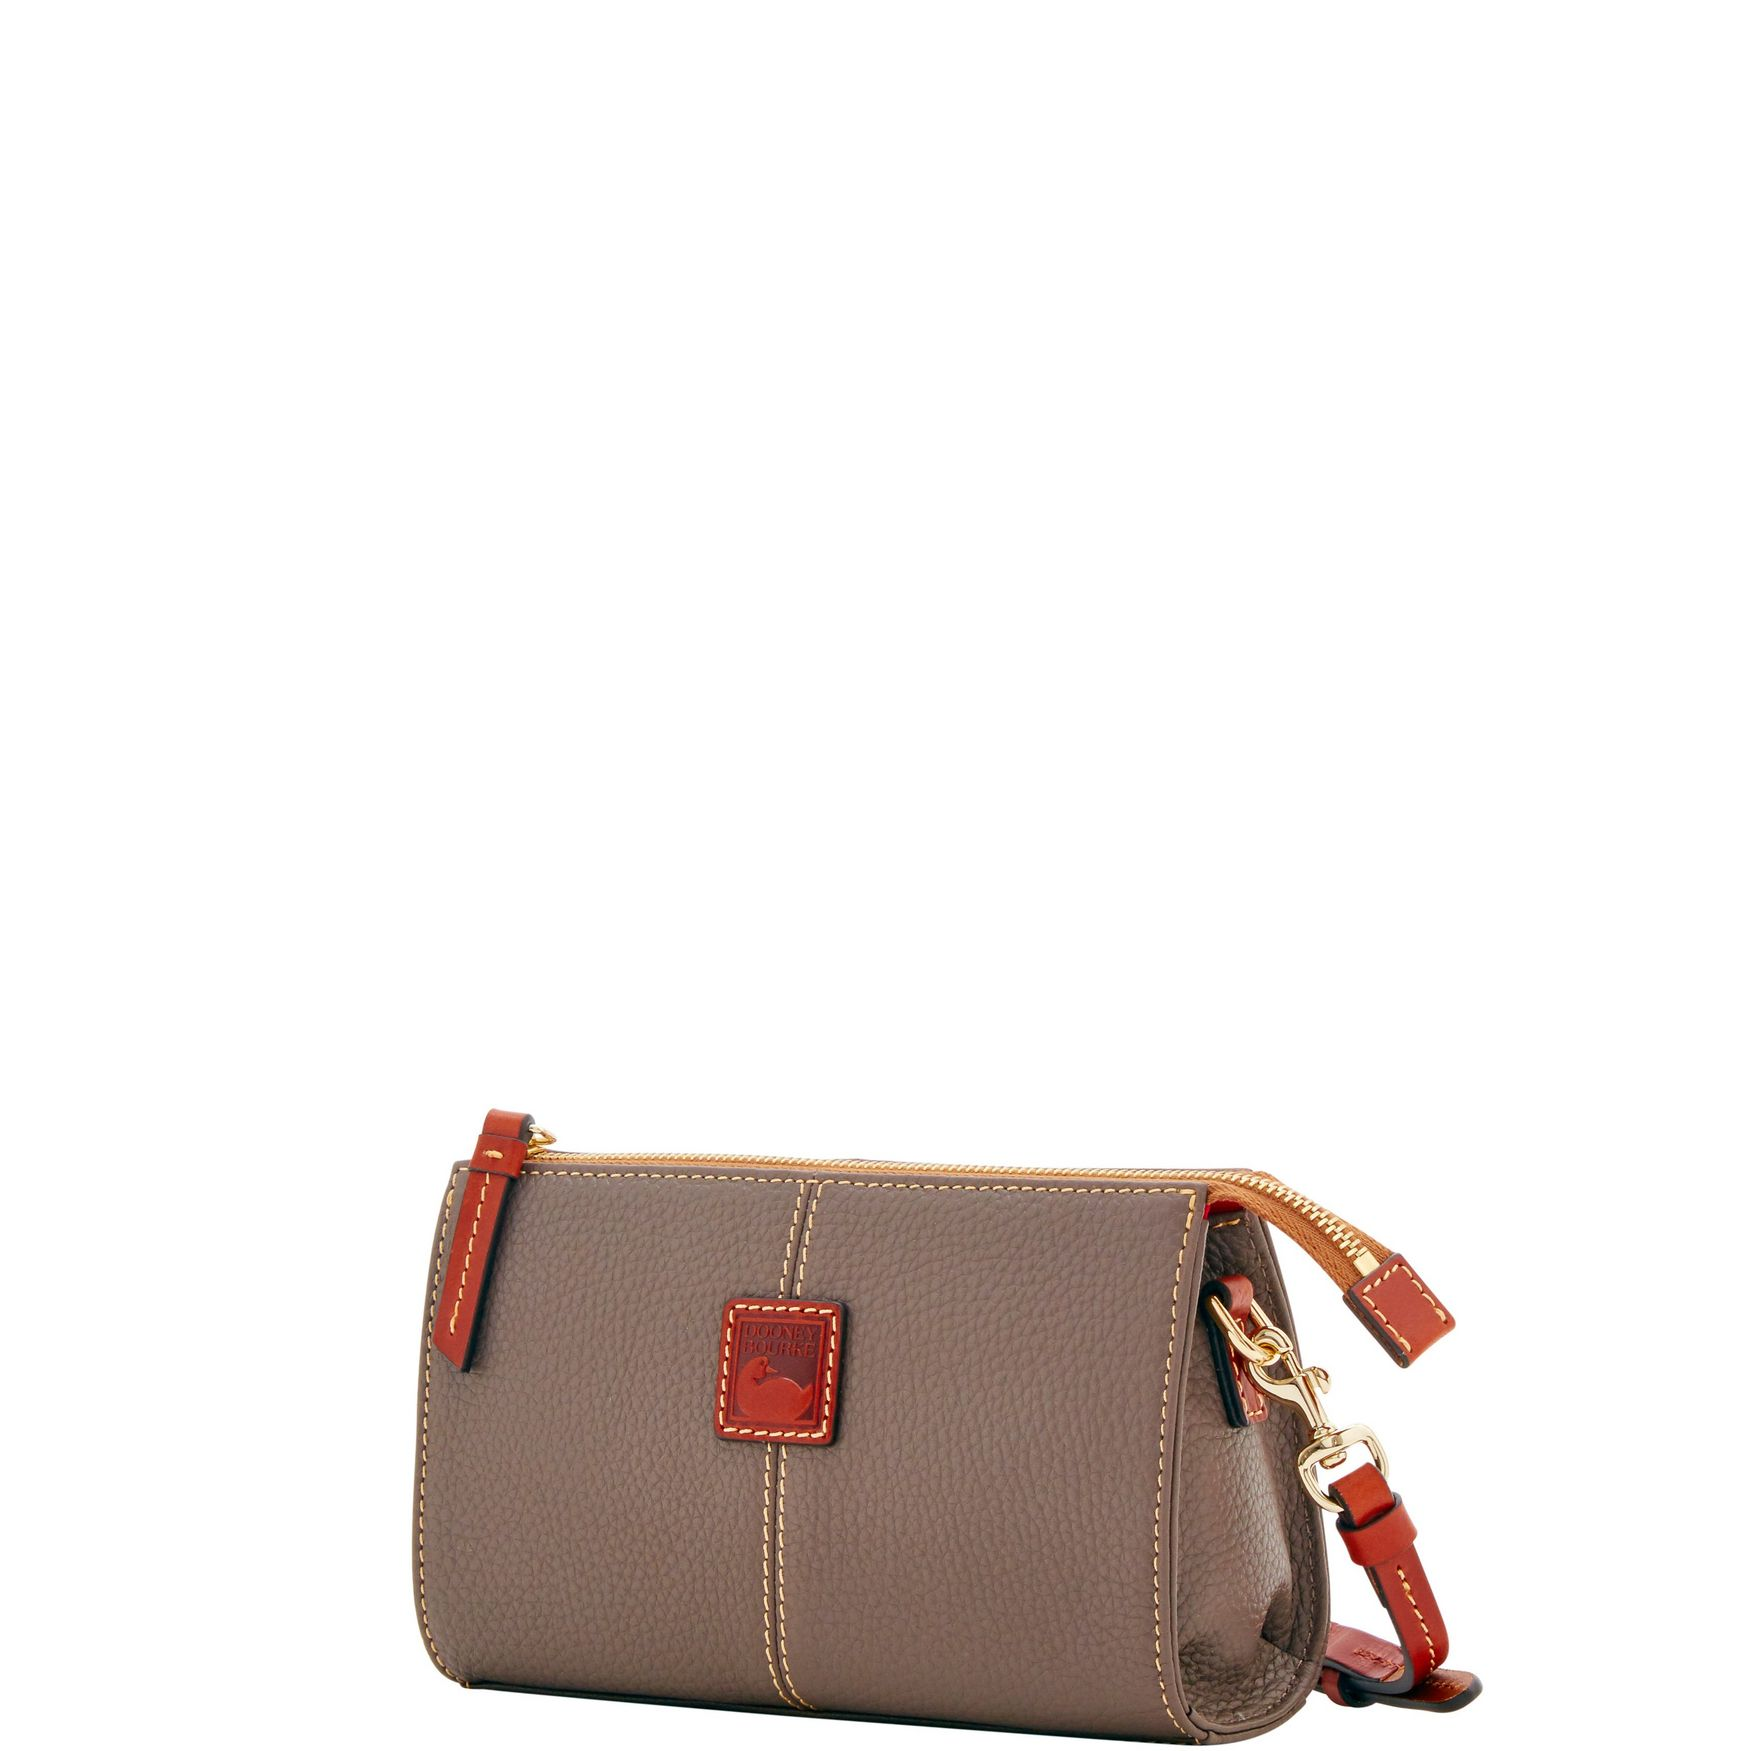 Dooney-amp-Bourke-Pebble-Grain-Small-Janine-Crossbody-Shoulder-Bag thumbnail 24